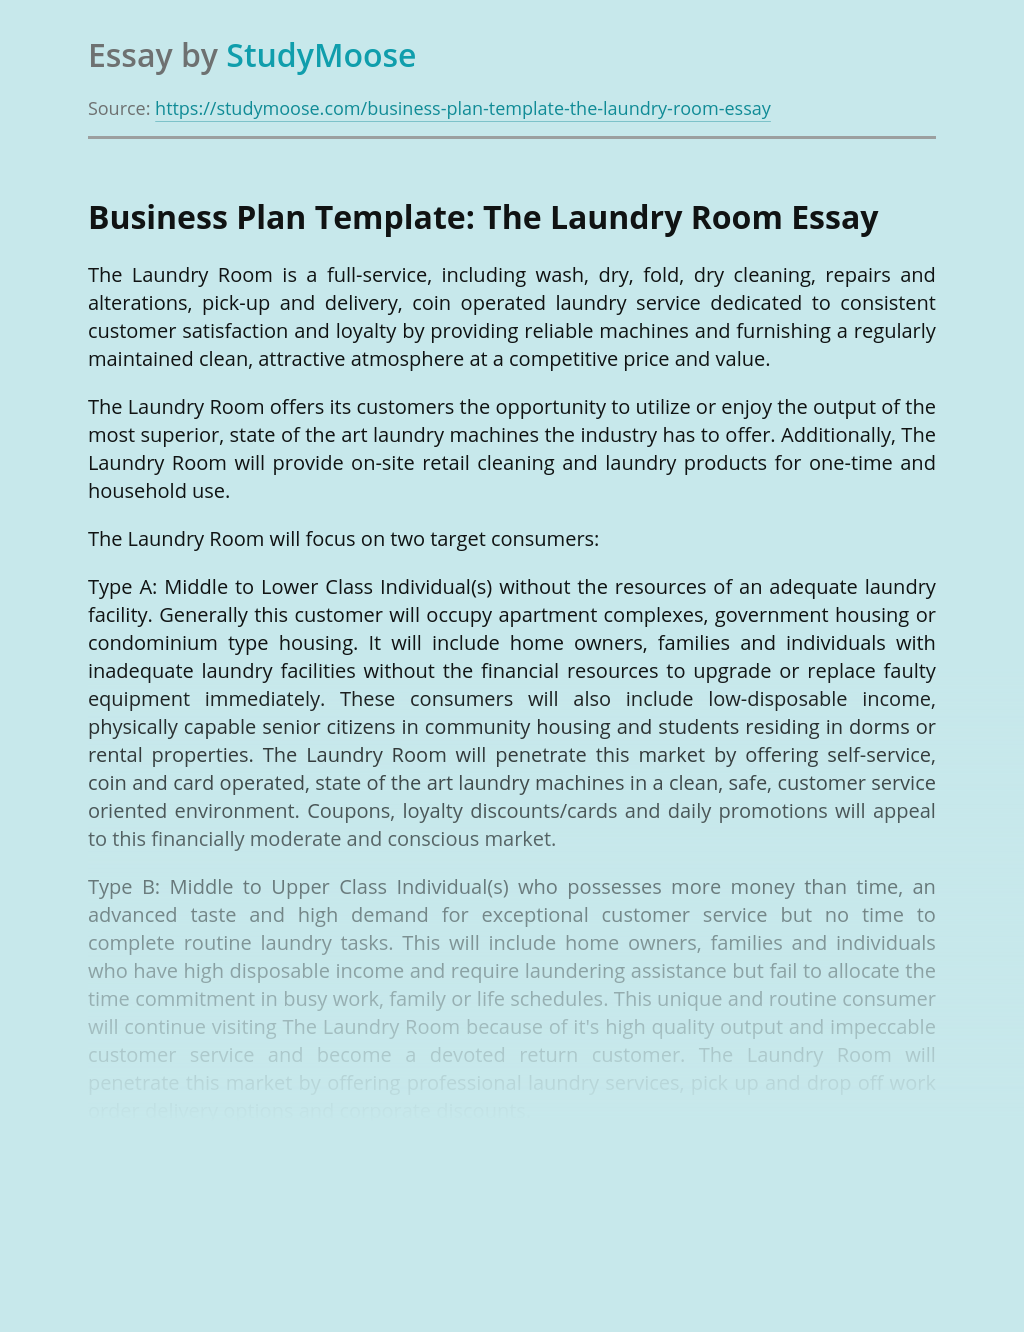 Business Plan Template: The Laundry Room